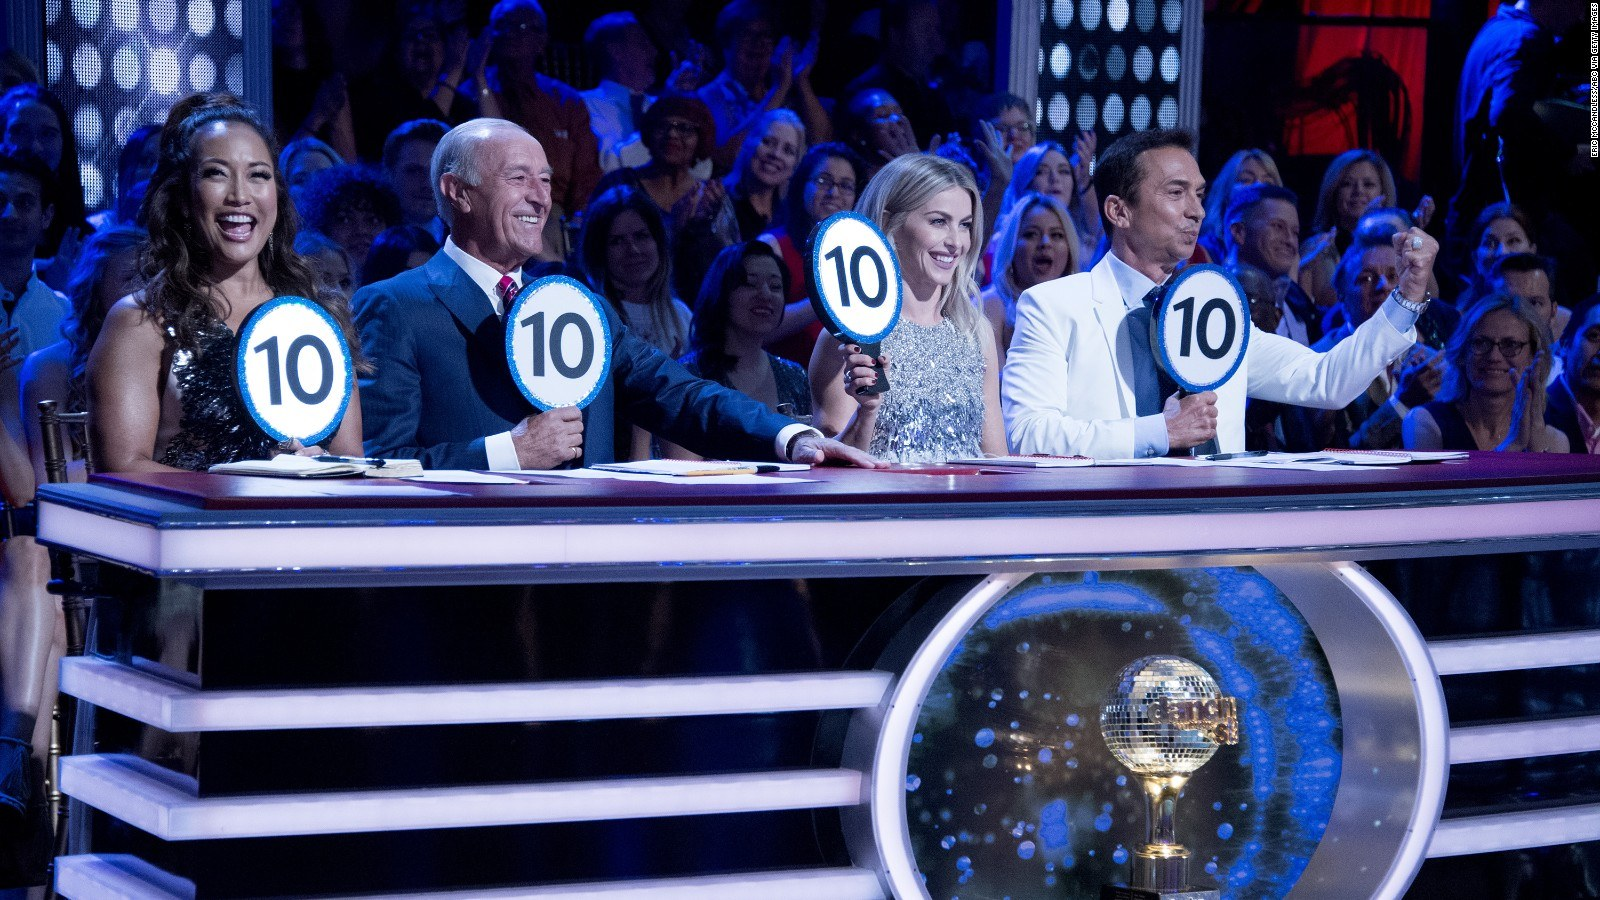 Carrie Ann Inaba, Len Goodman, Julianne Hough, and Bruno Tunioli hold up 10 signs on DWTS